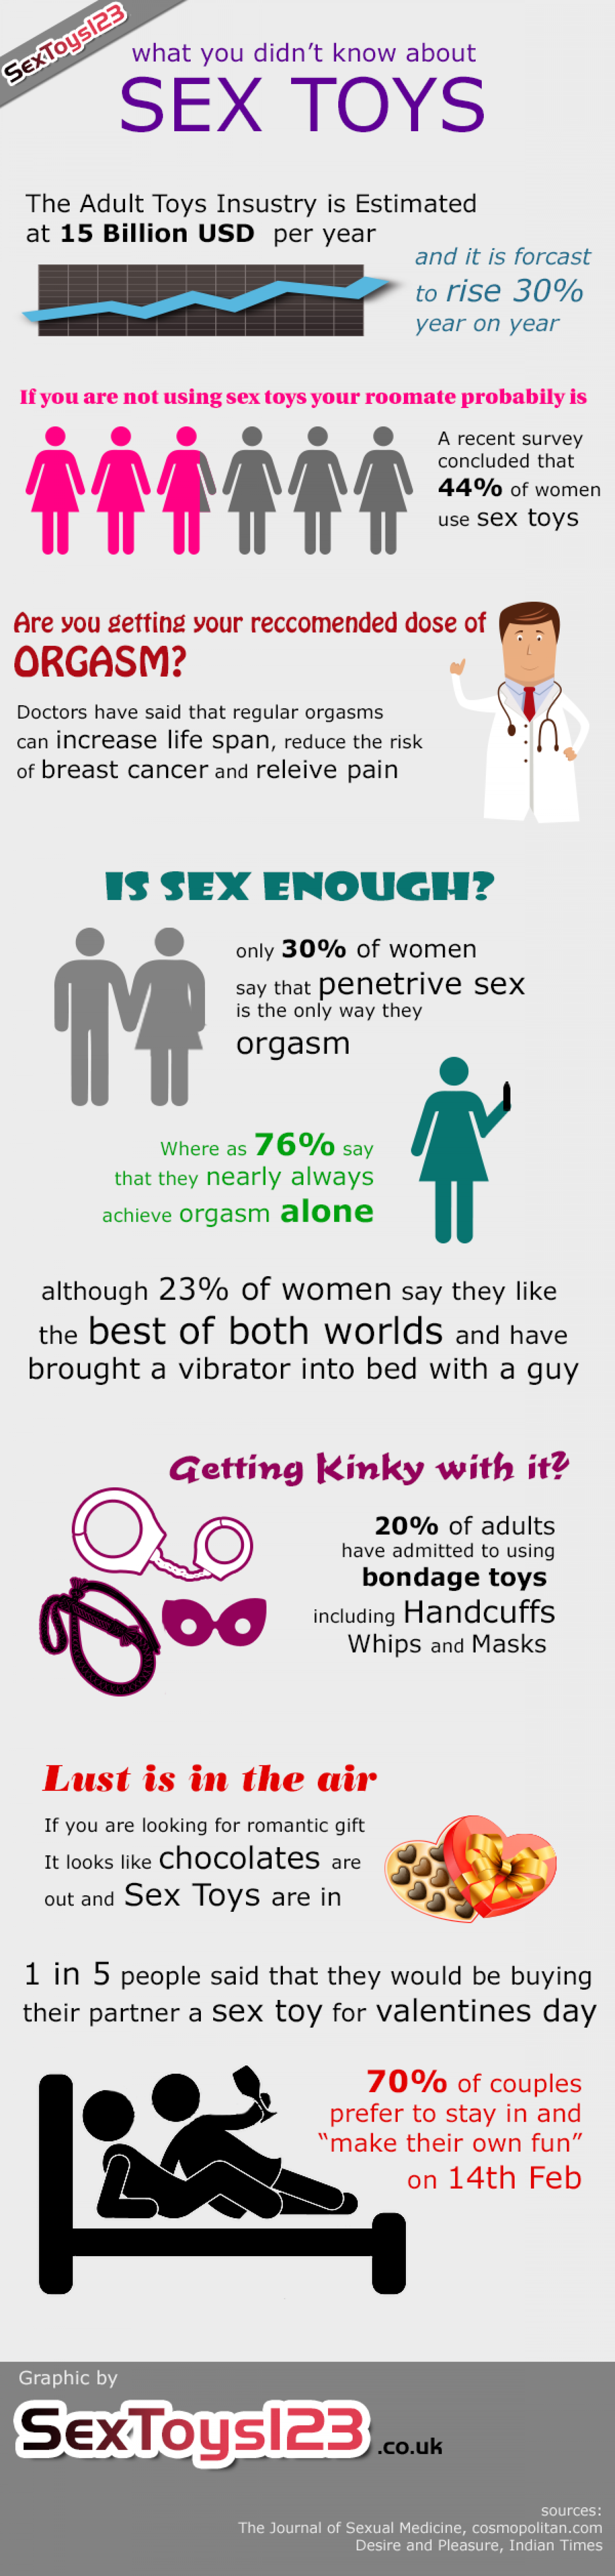 What you didn't know about Sex Toys Infographic